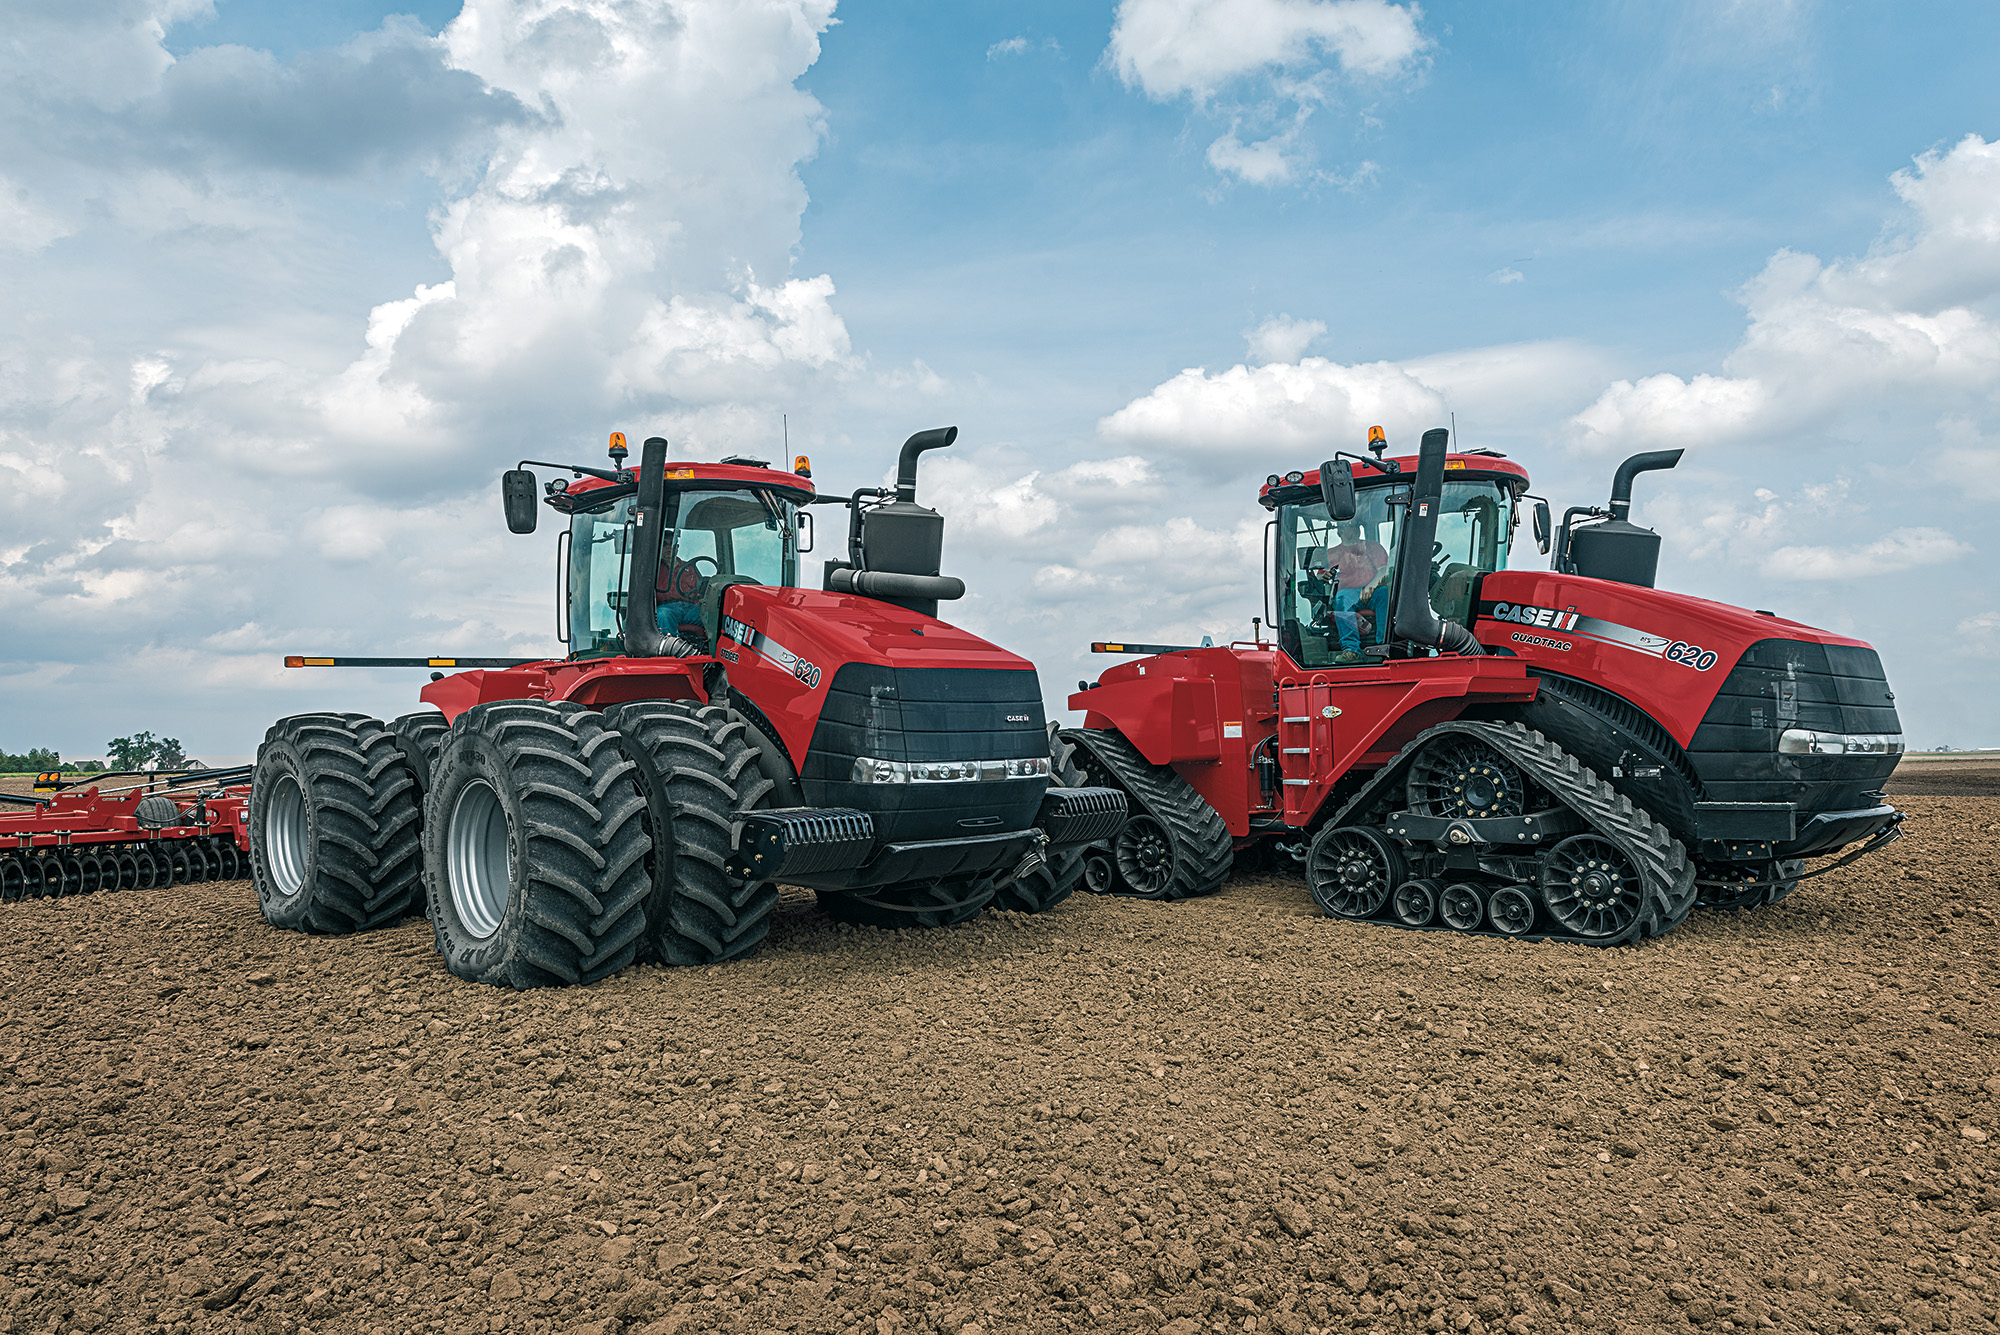 Two Case IH tractors parked side by side on a field.